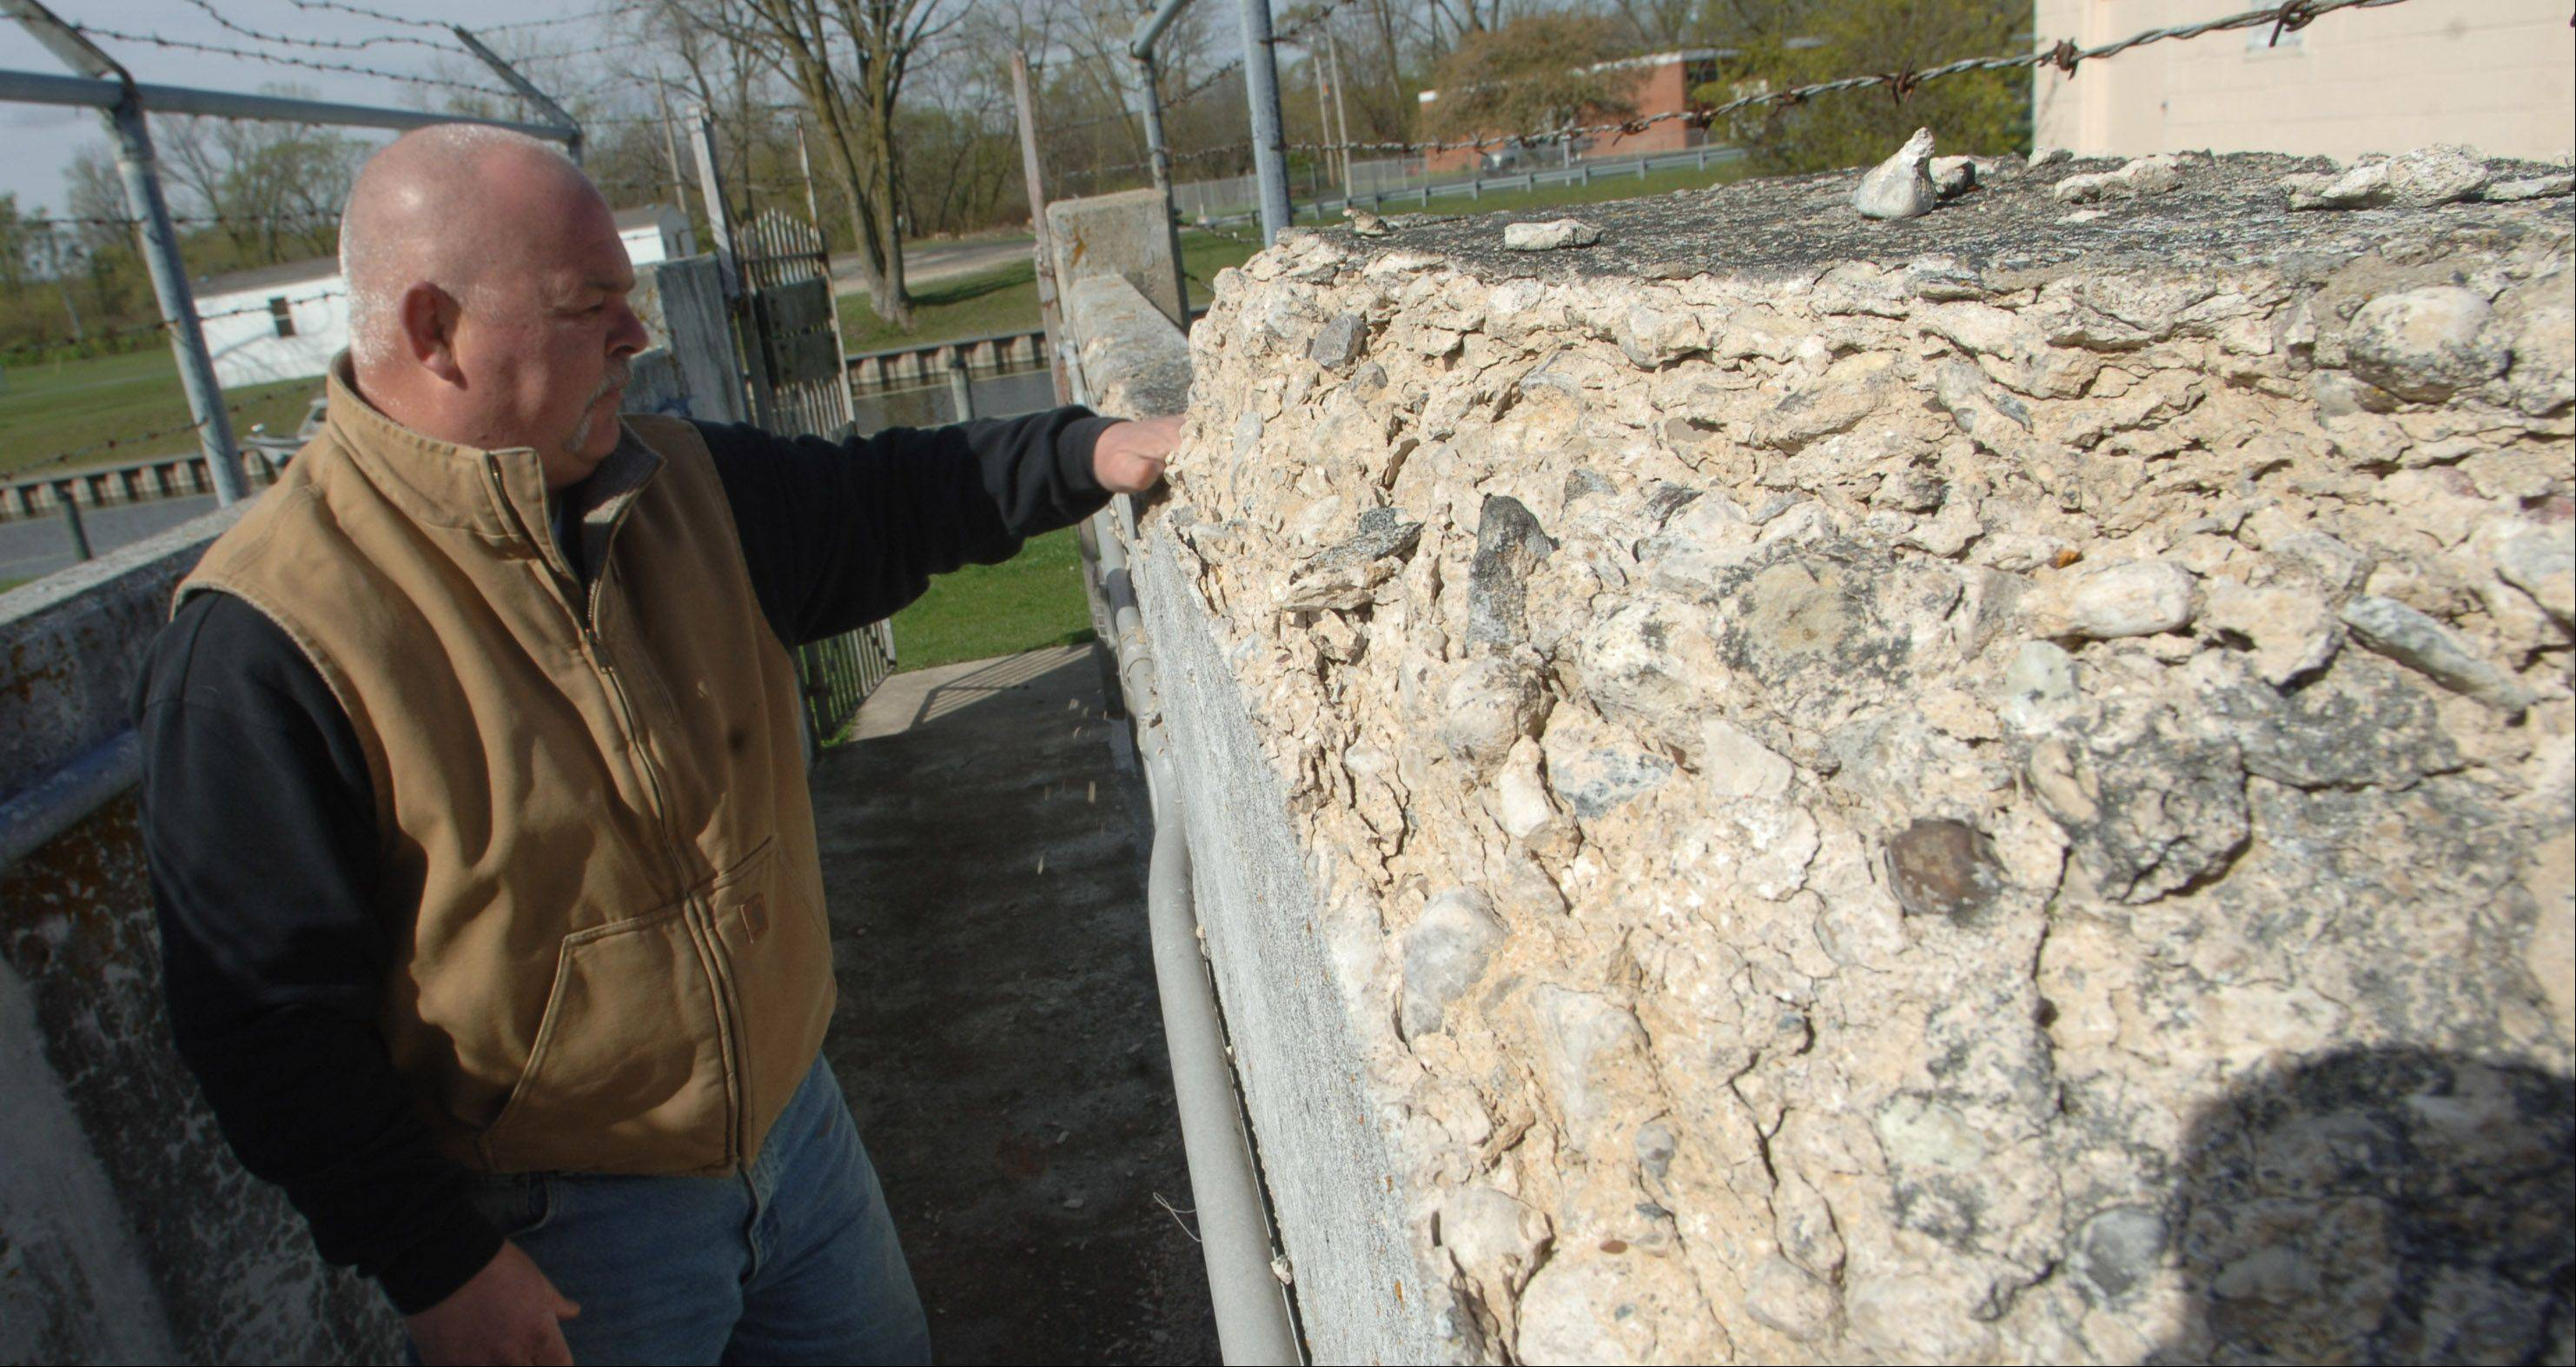 Crumbling concrete is one of the main issues at the William G. Stratton Lock and Dam near McHenry. The Illinois Department of Natural Resources is considering several options for improving the aging structure.